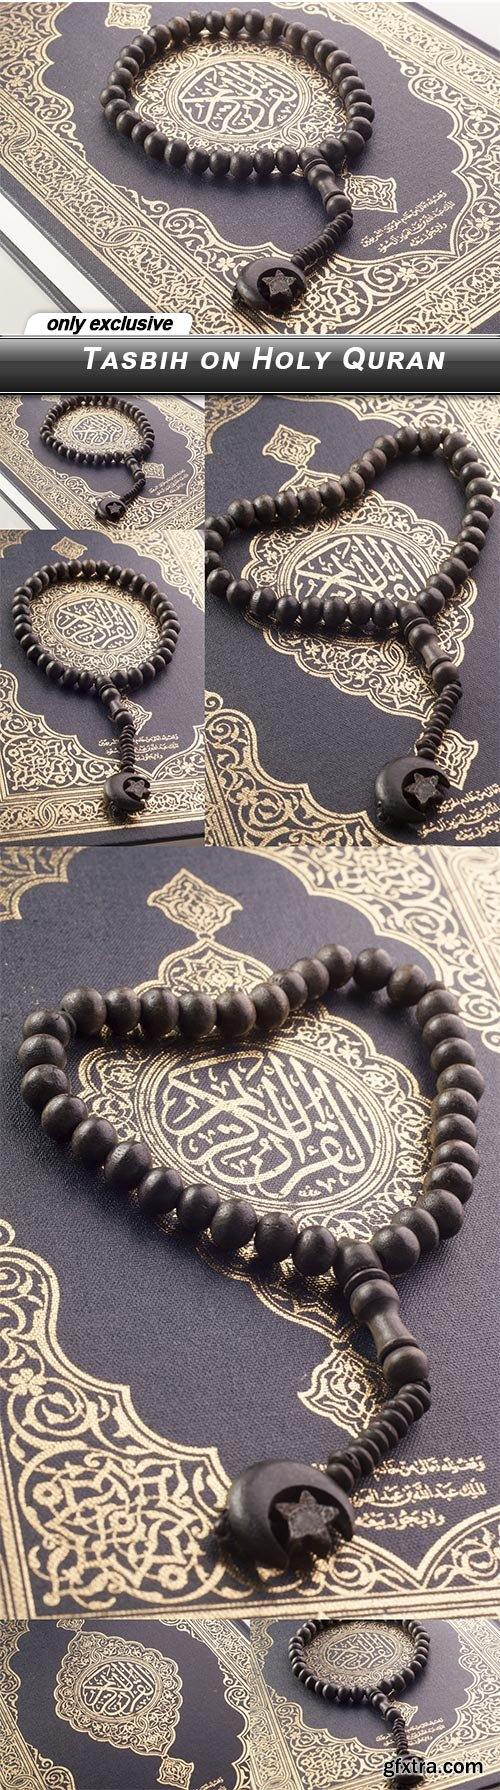 Tasbih on Holy Quran - 6 UHQ JPEG